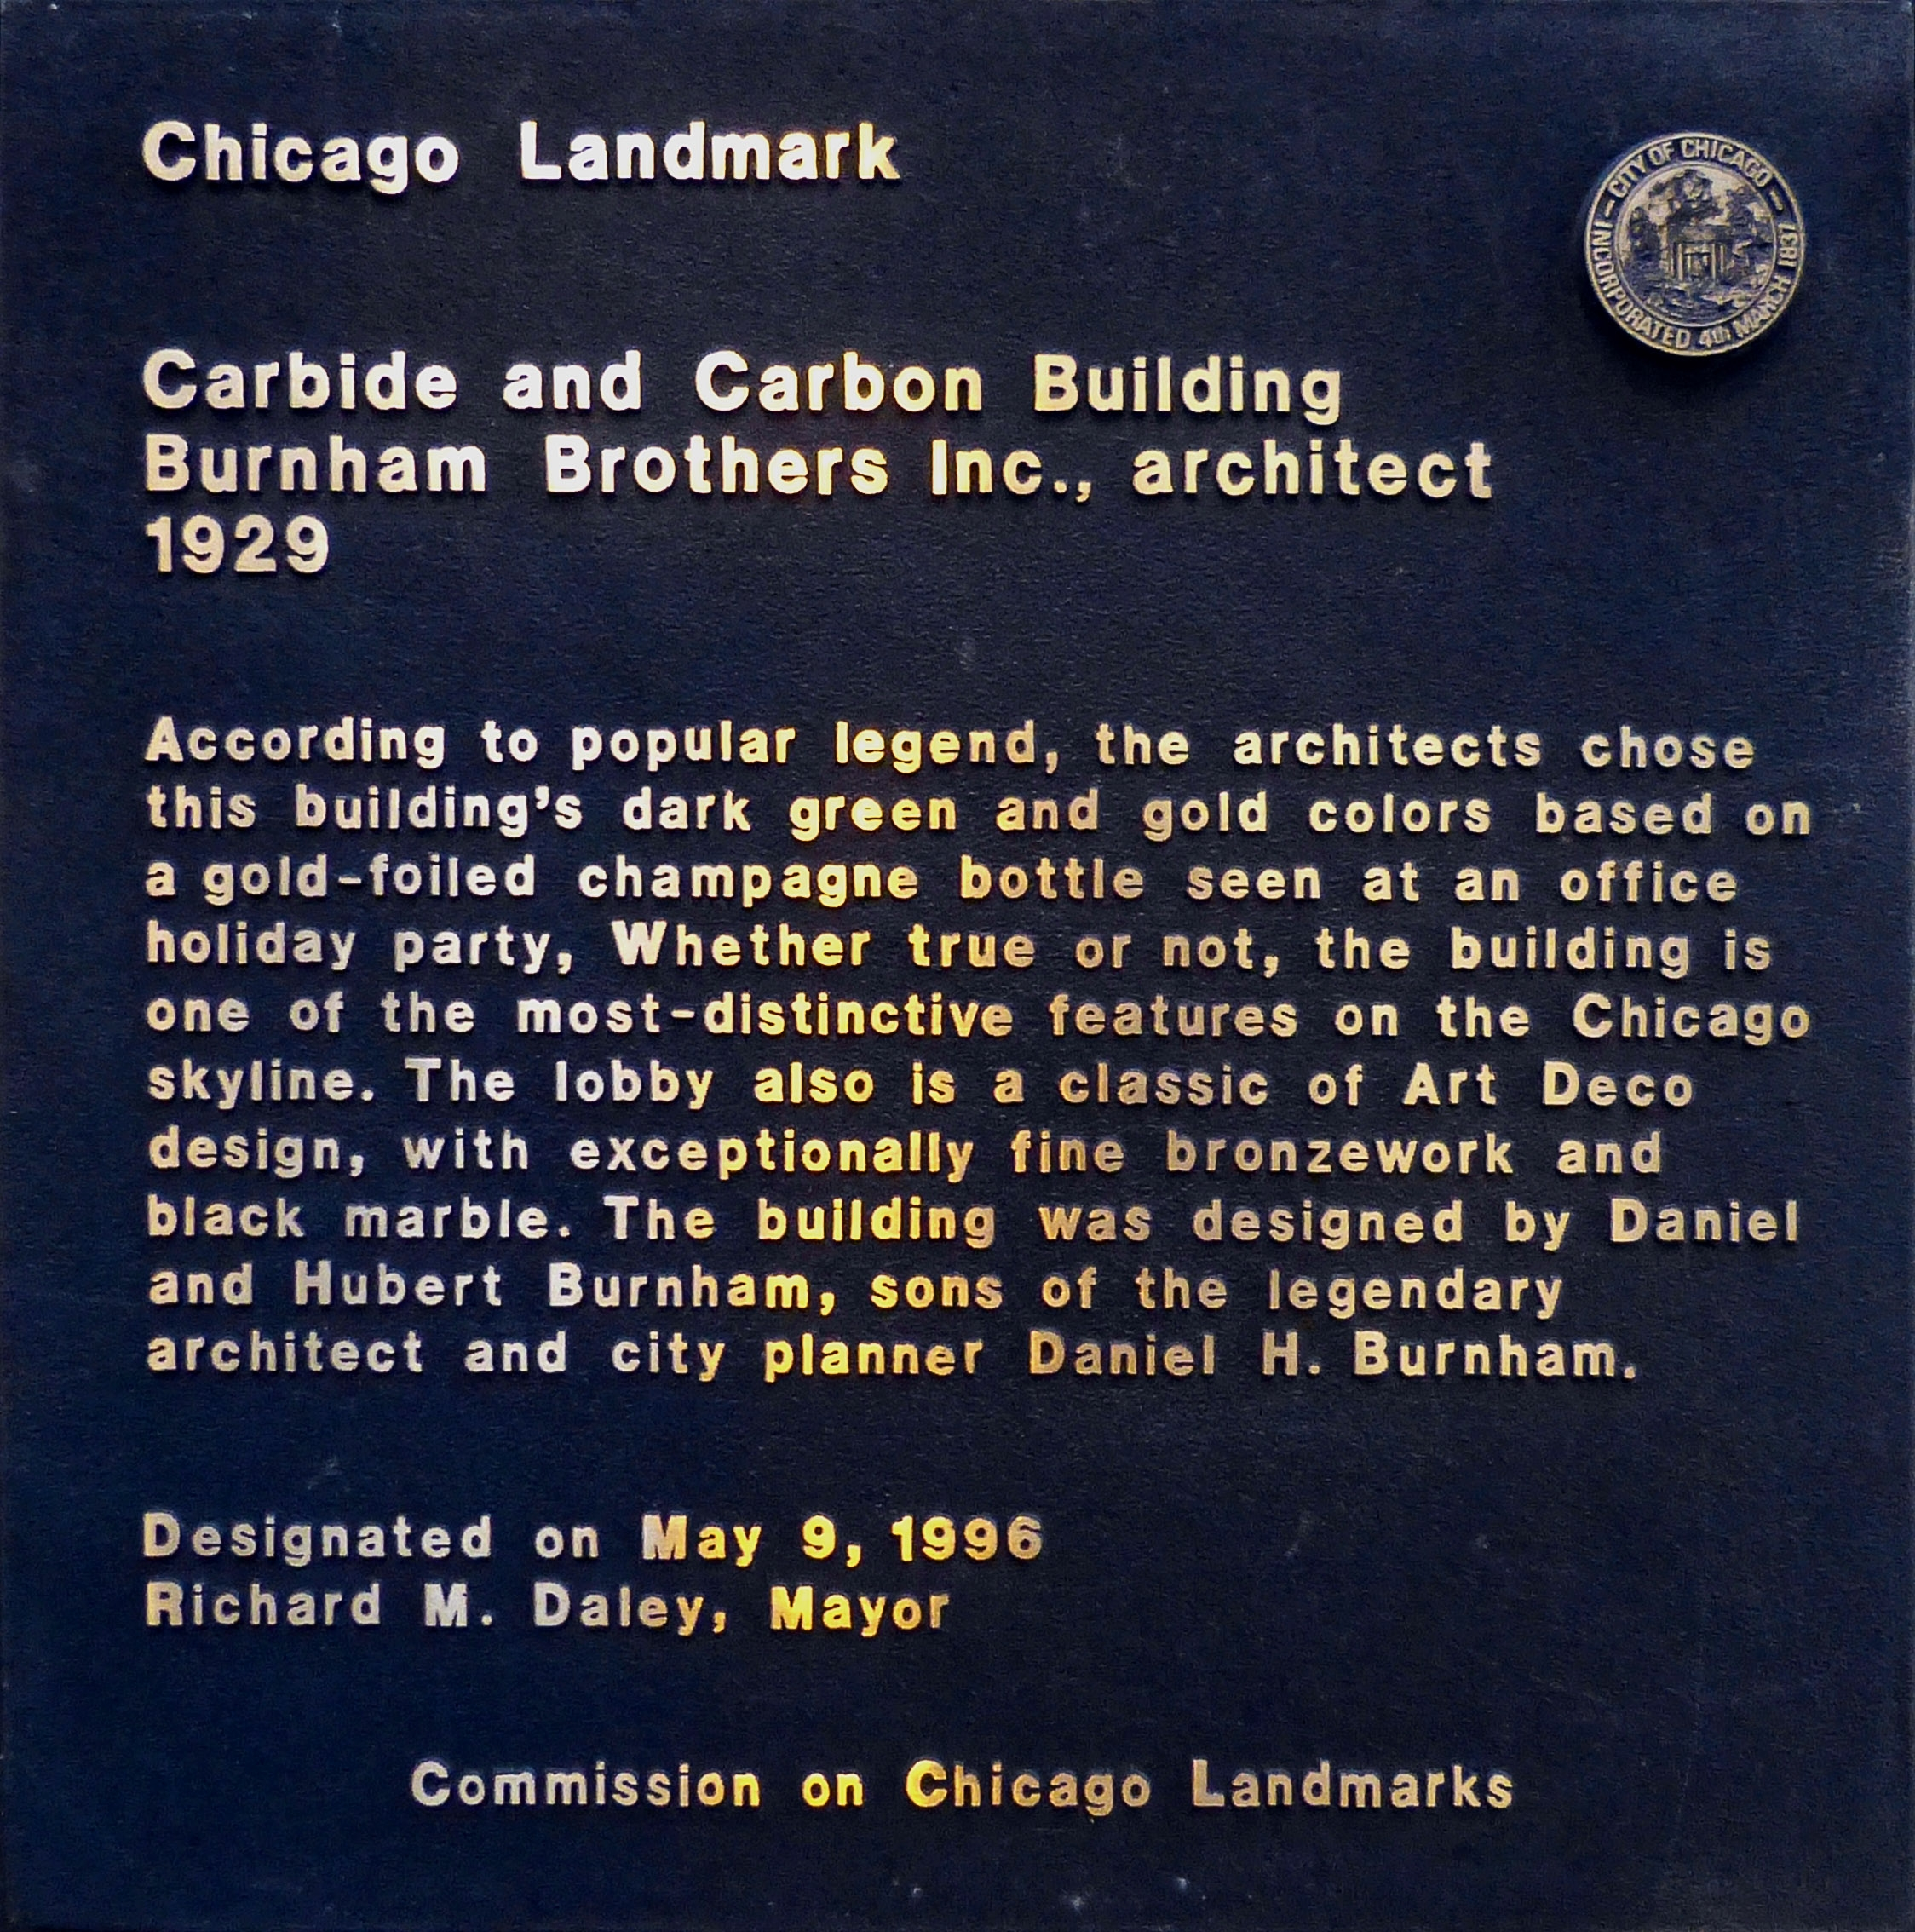 Carbide and Carbon Building Marker